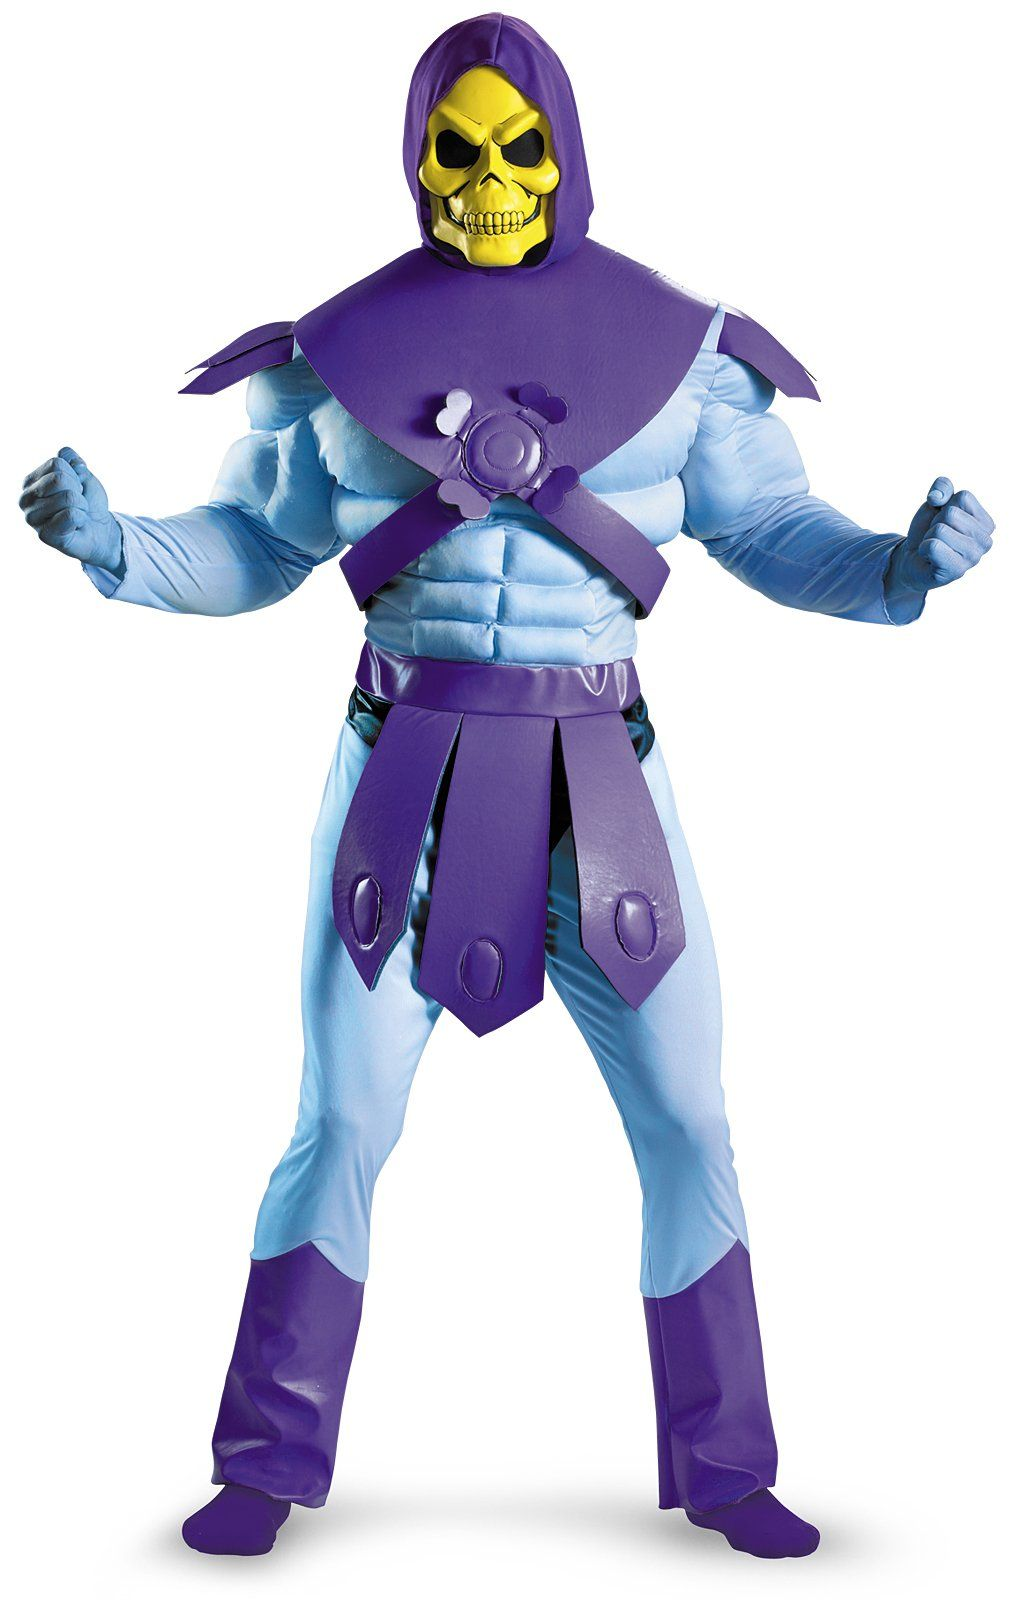 skeletor #hollweencostume | holloween fun | costumes / pranks